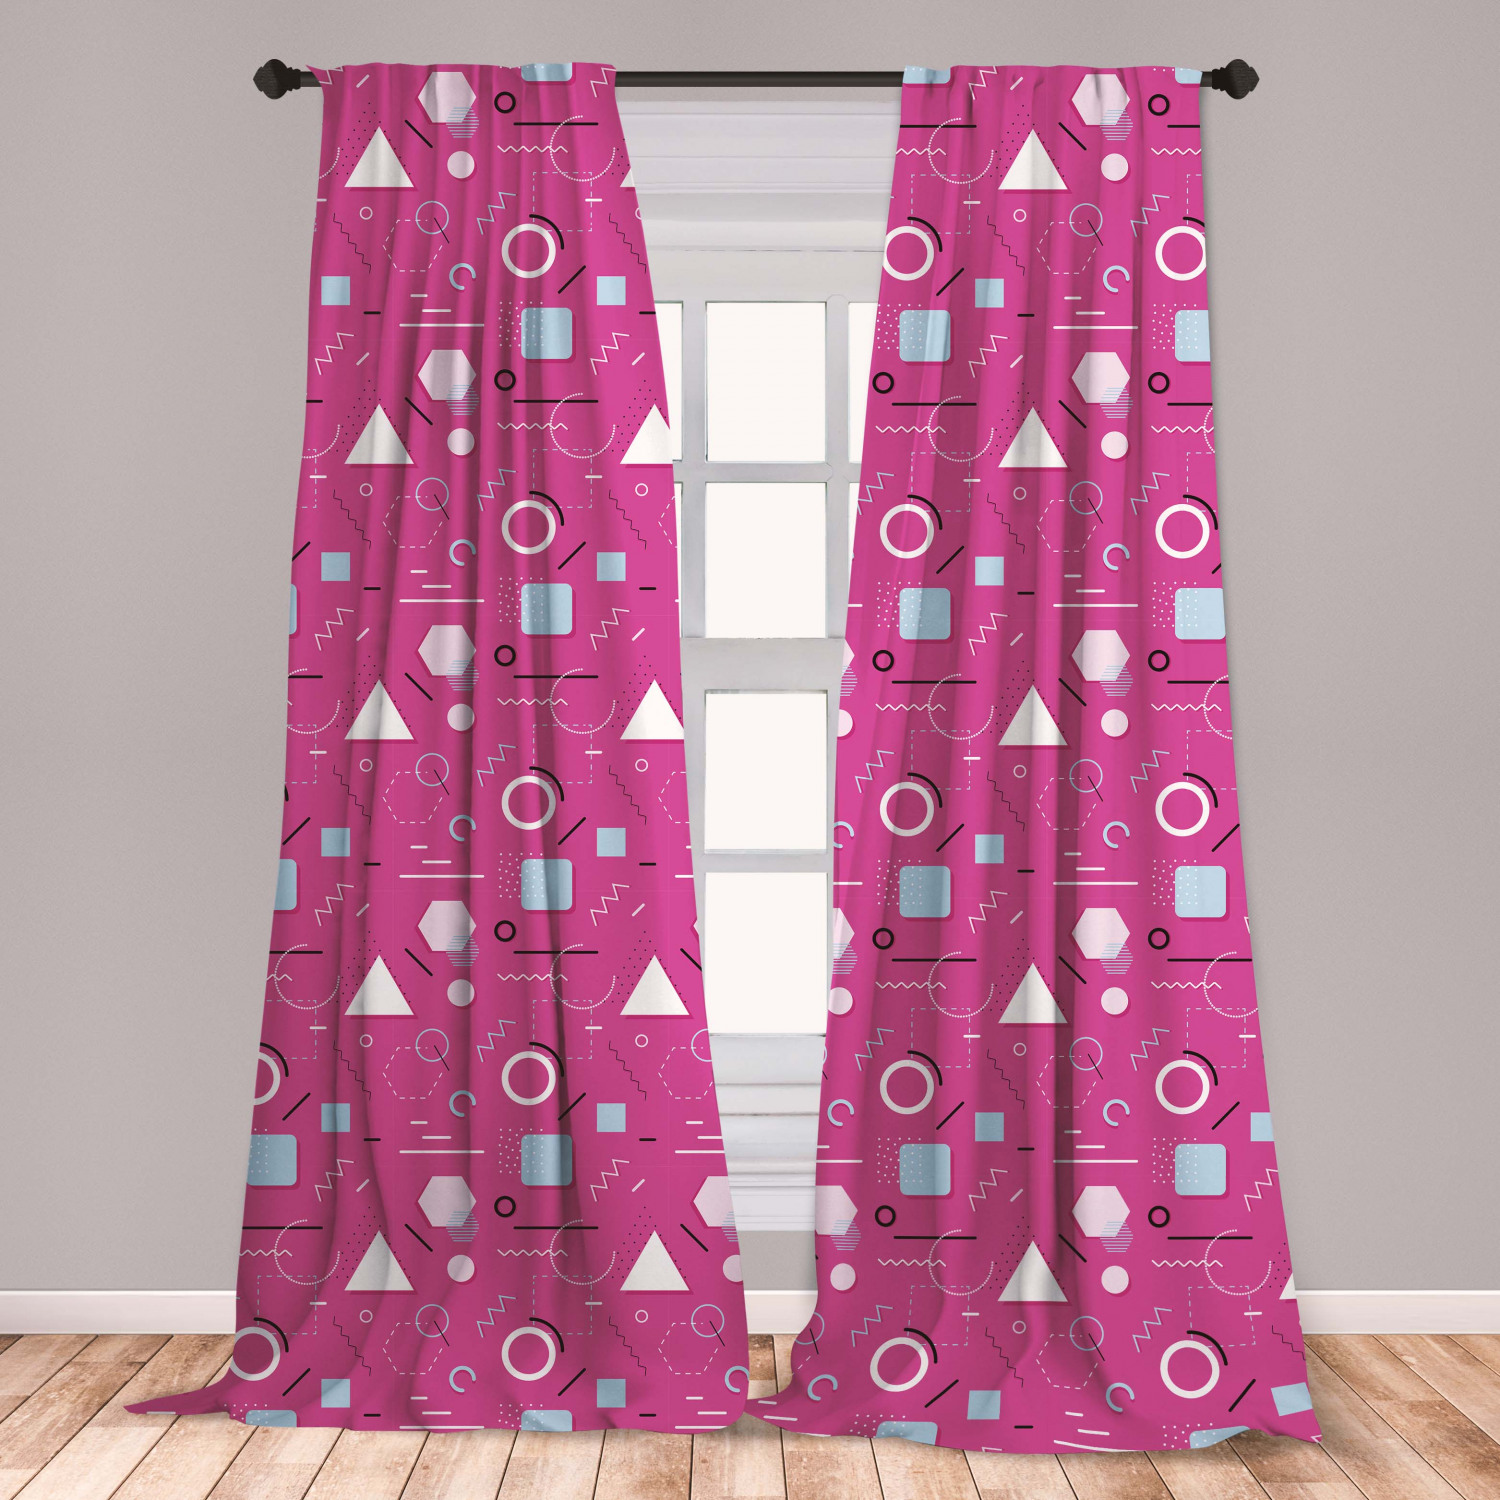 Geometric Curtains 2 Panels Set Vintage Memphis Style Triangles Hexagons And Squares Eighties Design Window Drapes For Living Room Bedroom Pink Pale Blue Black By Ambesonne Walmart Com Walmart Com